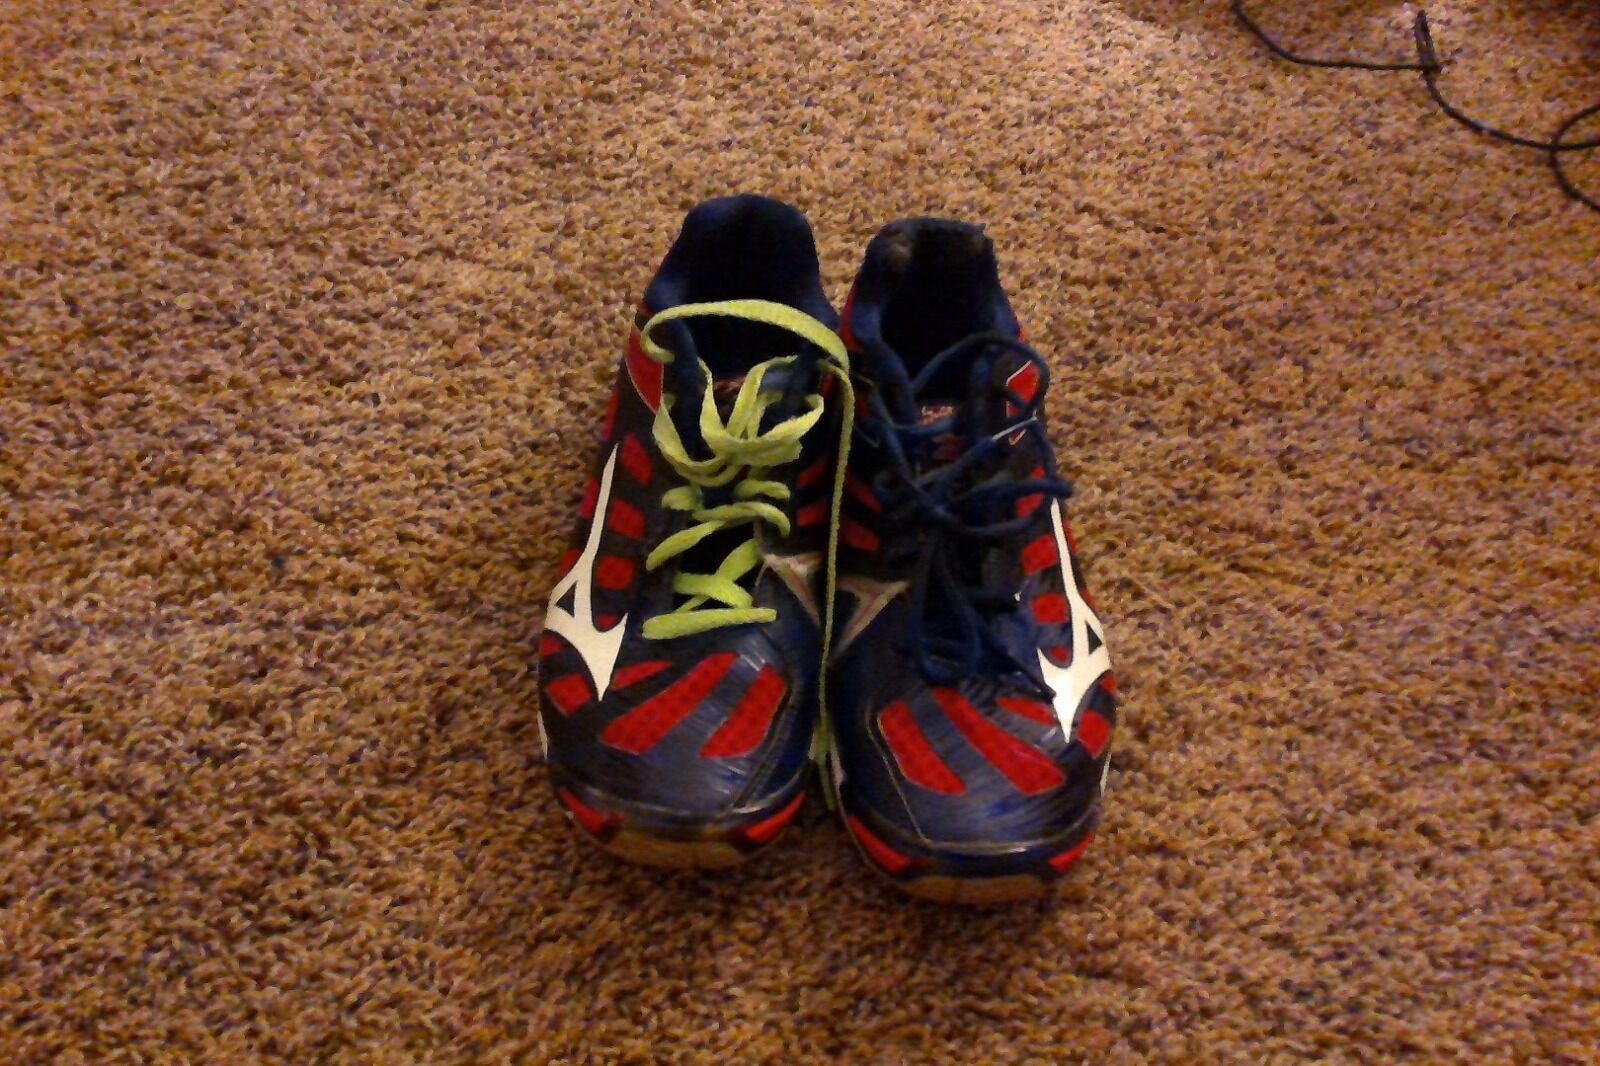 Women's Mizuno Red/White/Blue Volleyball Shoes 7.5 US